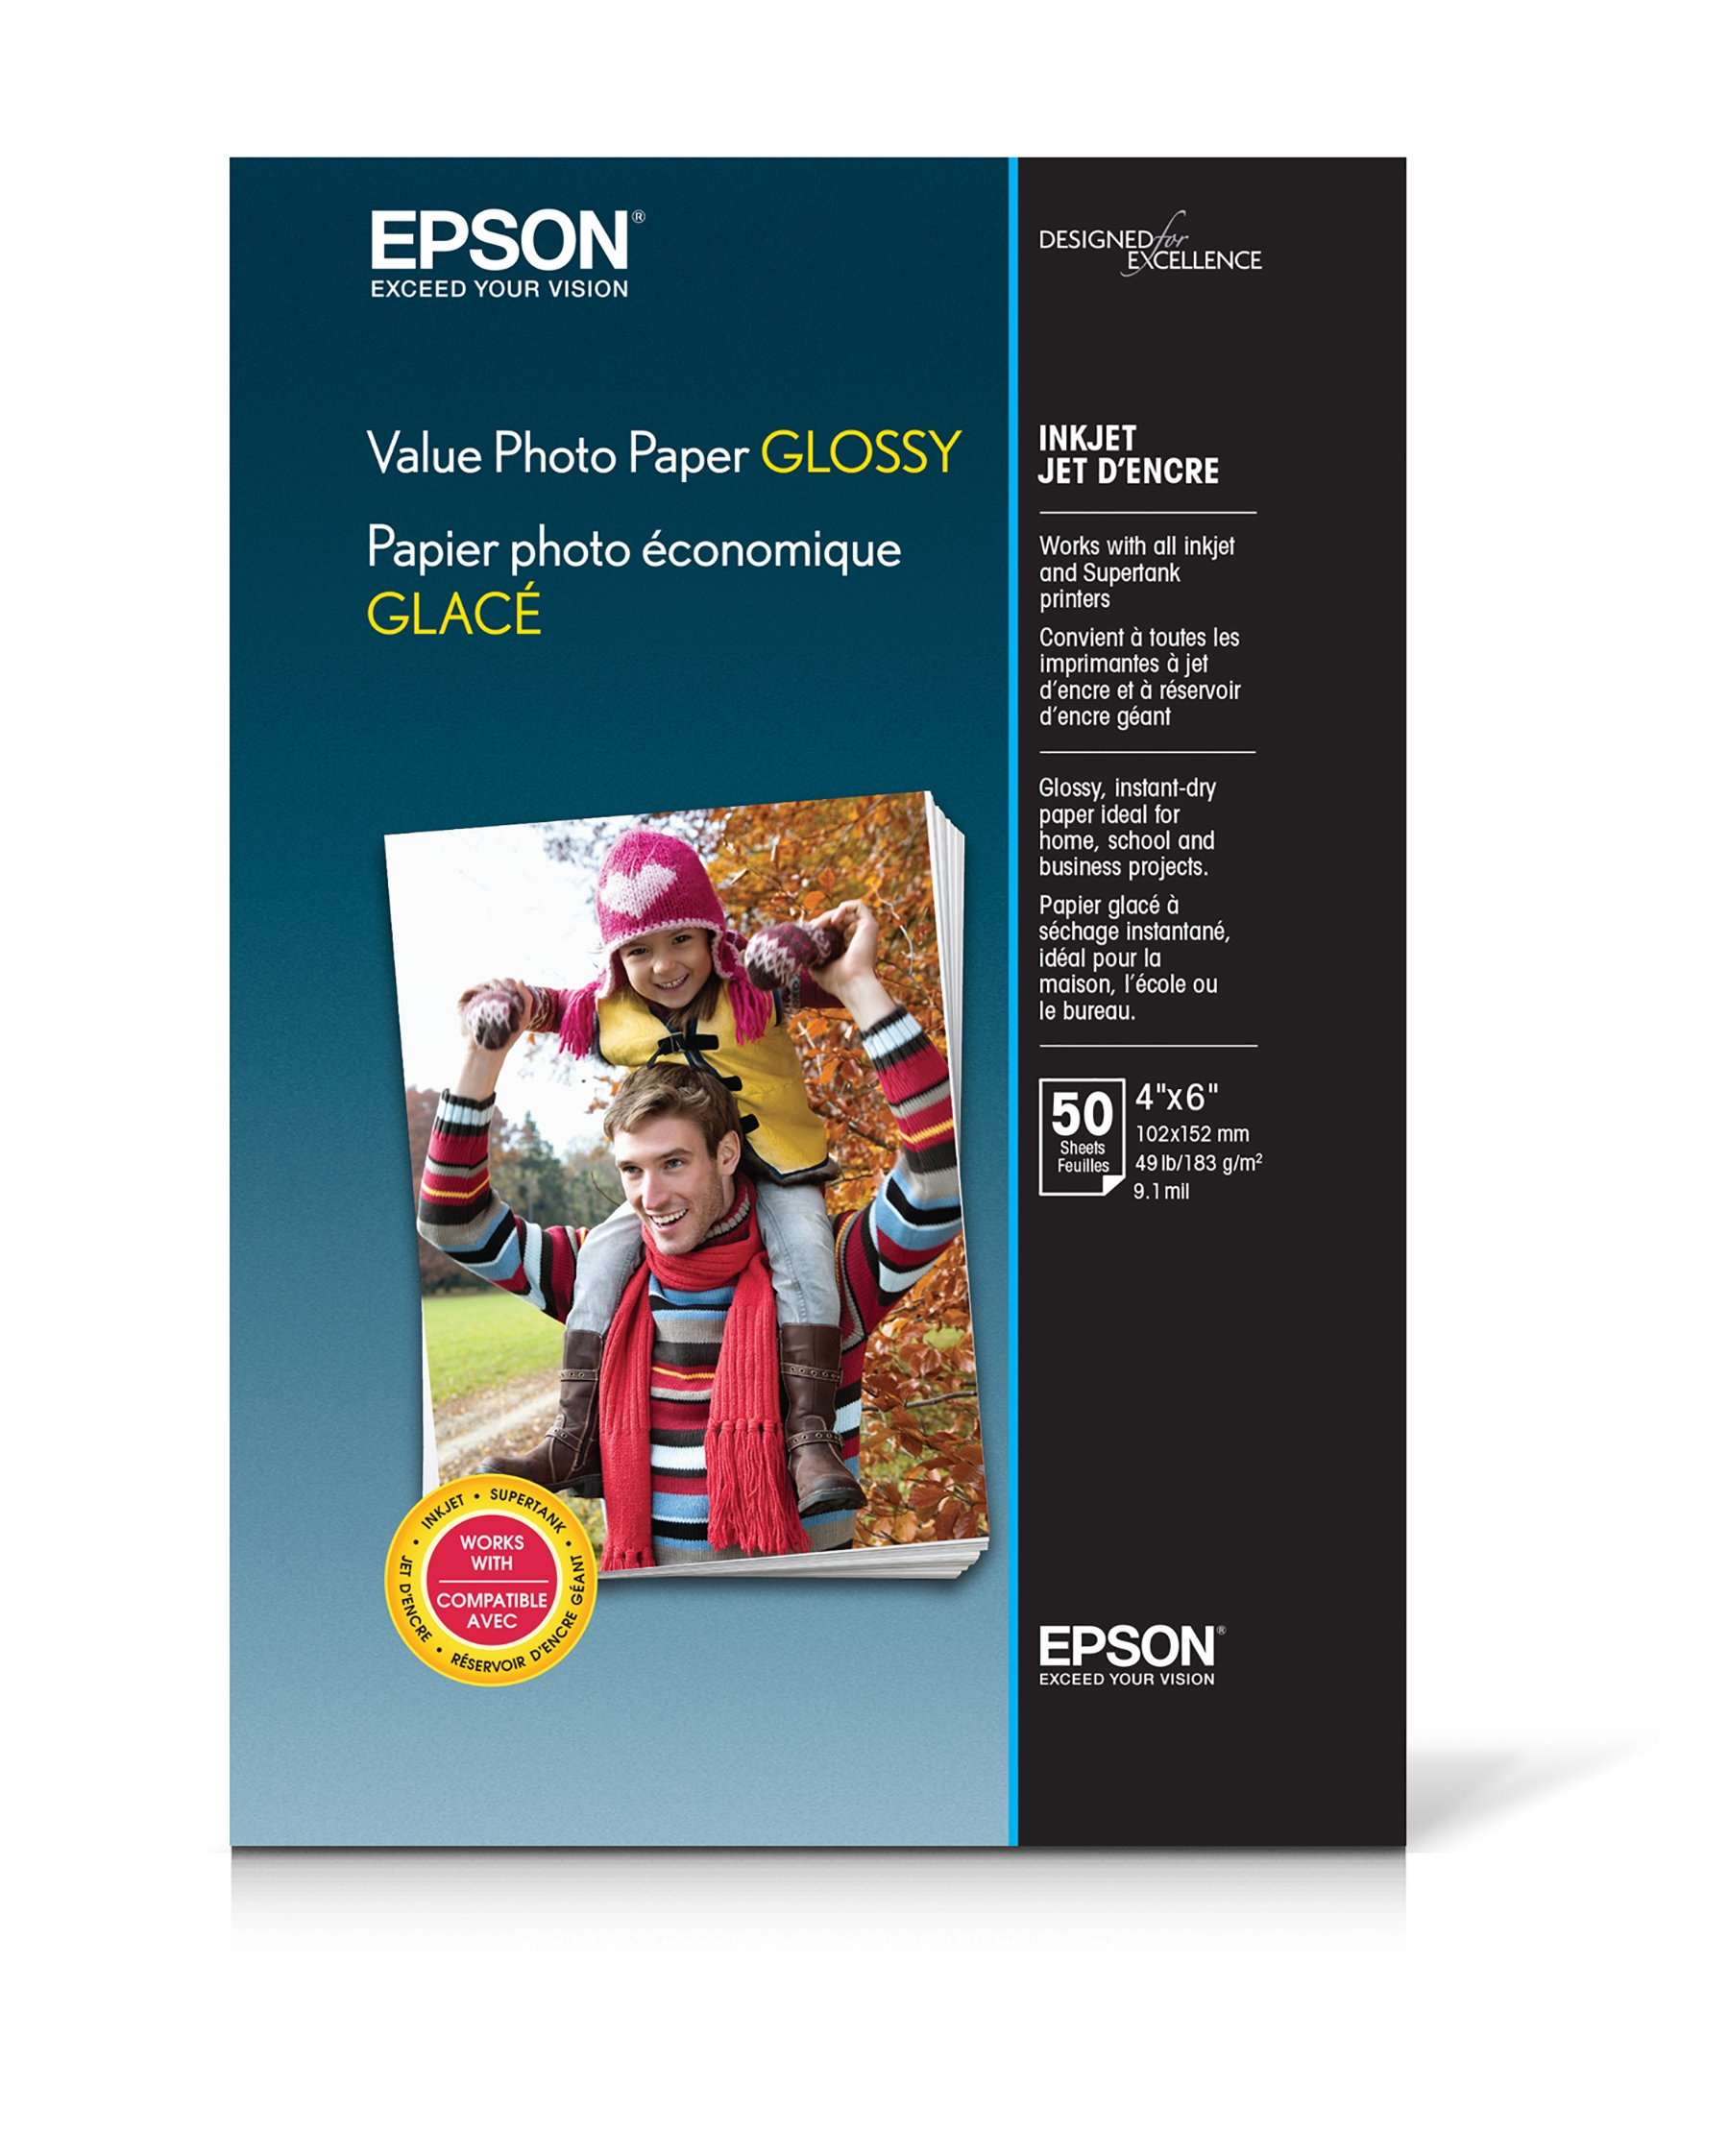 """Epson Value Photo Paper Glossy, 4""""x6"""", 50 Sheets (S400033)"""